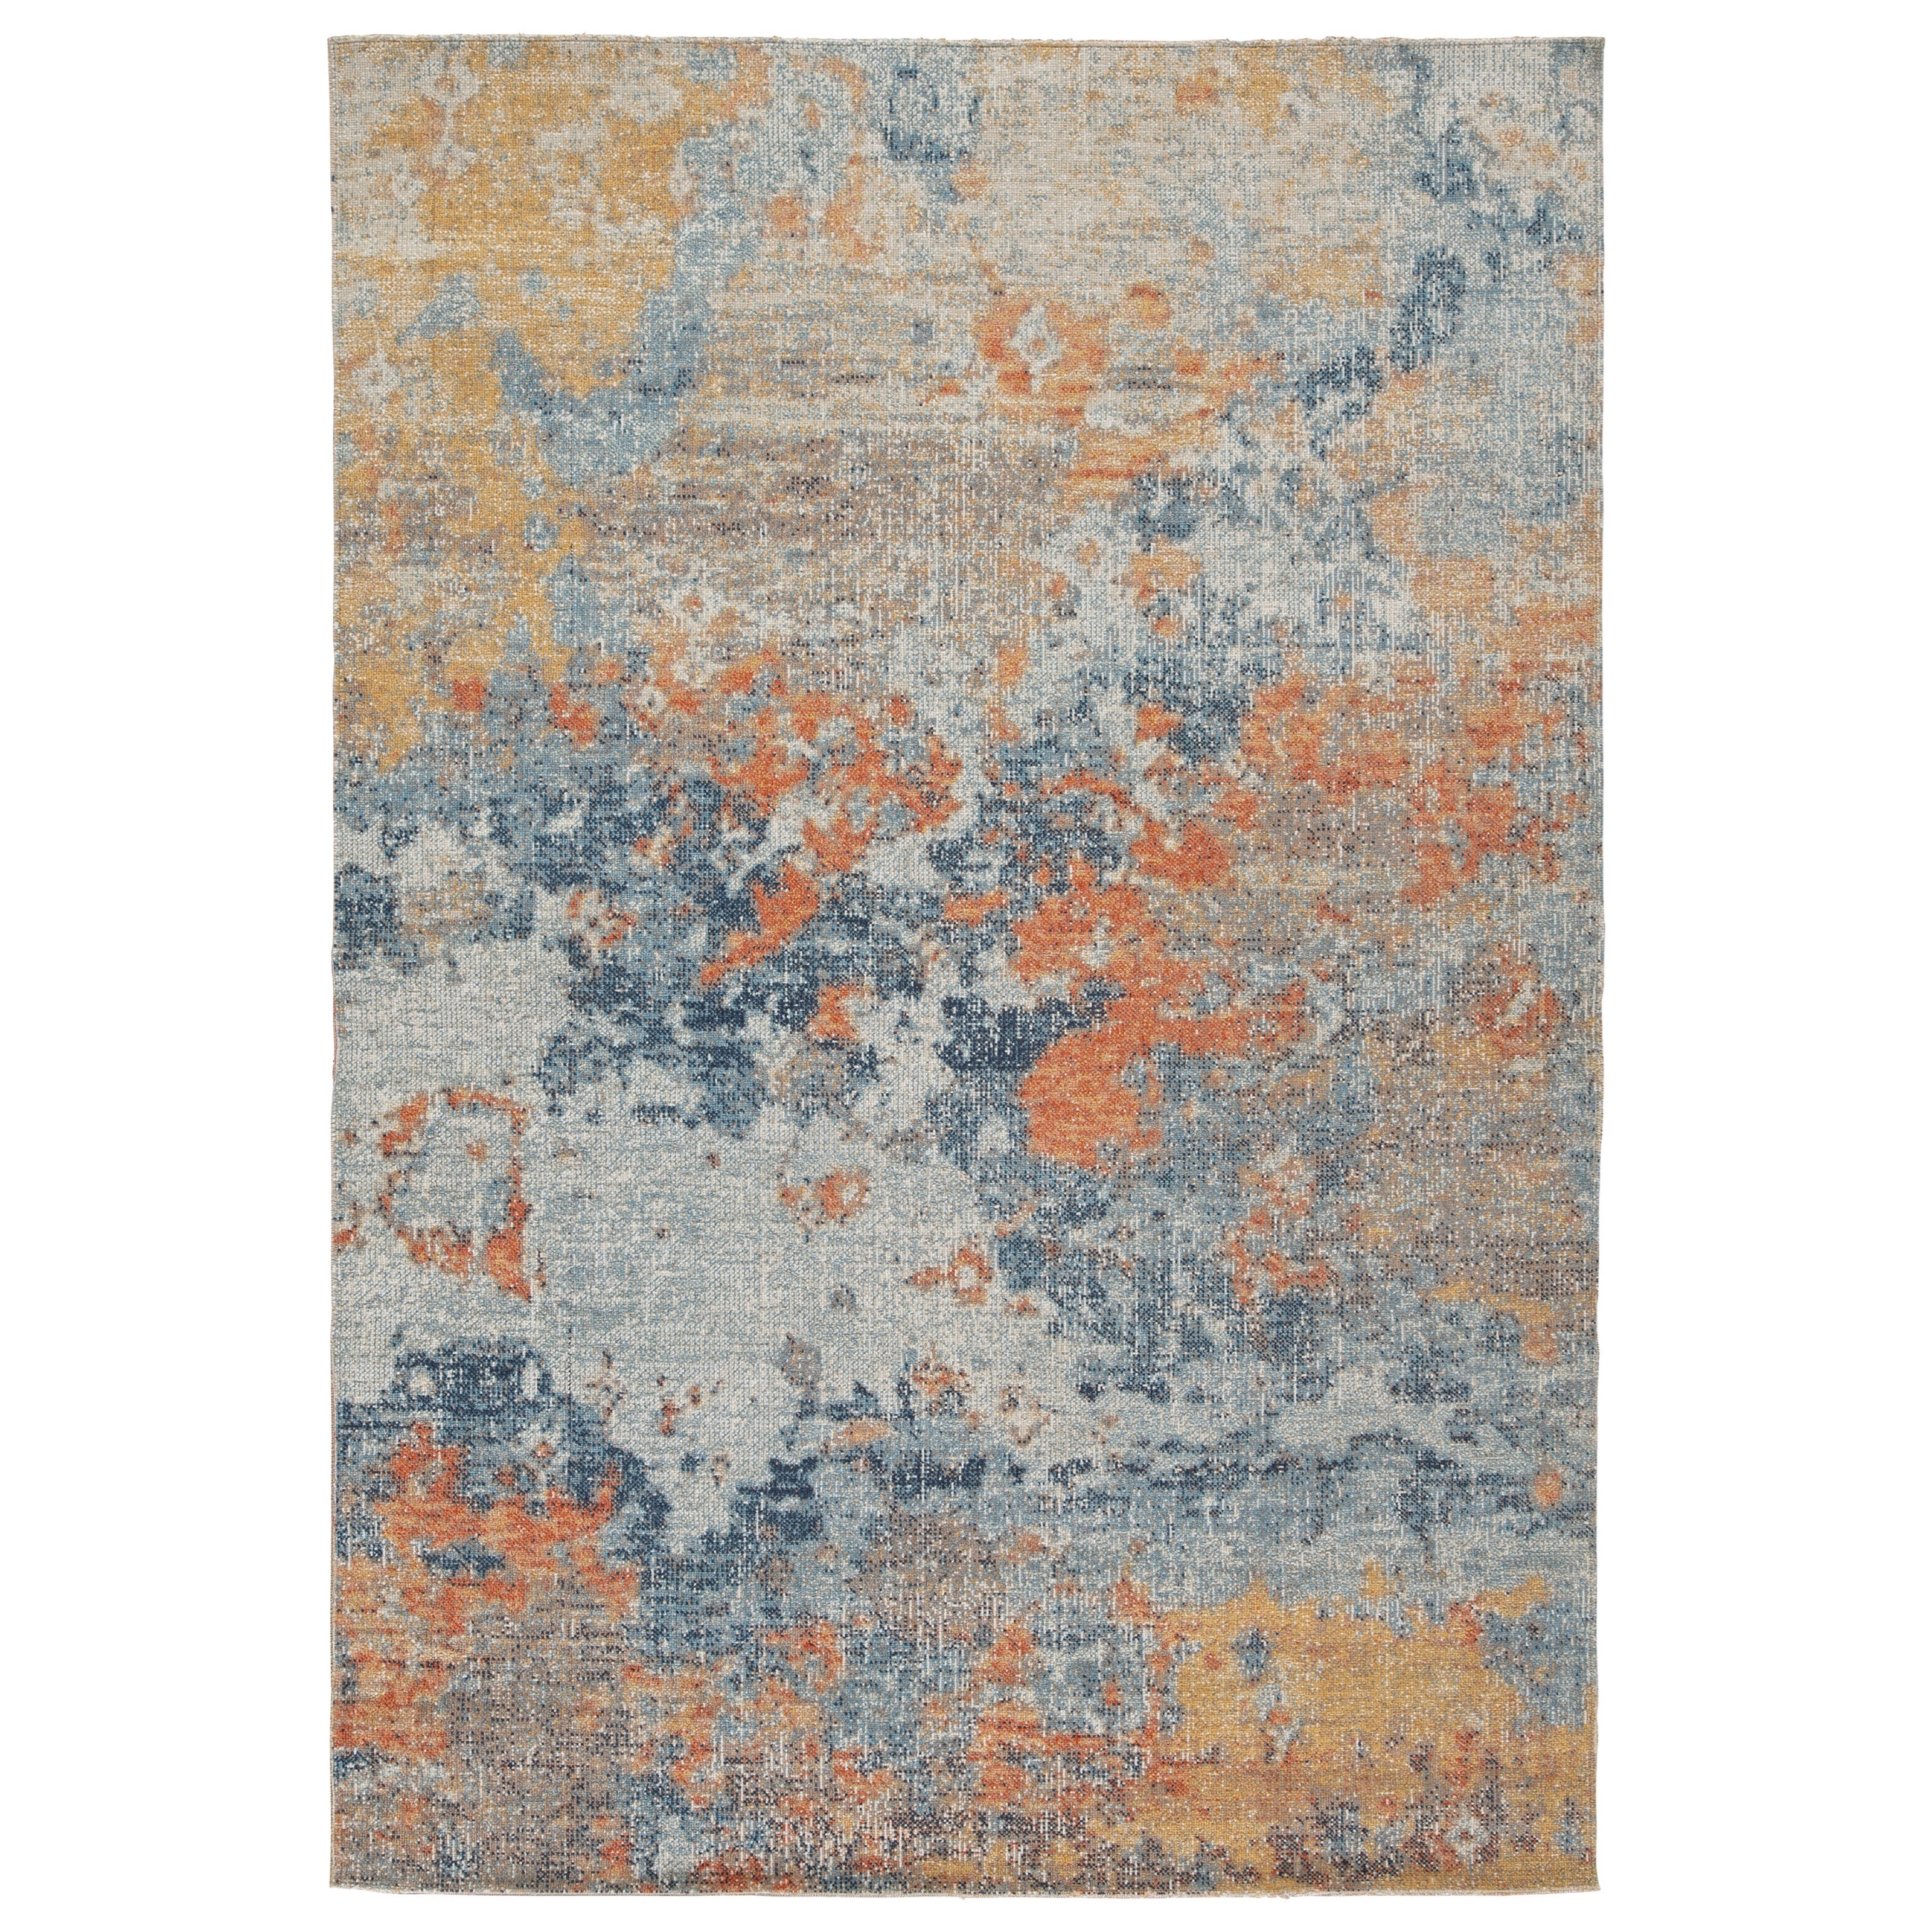 Contemporary Area Rugs Wraylen Indoor/Outdoor Large Rug by Signature Design by Ashley at Smart Buy Furniture